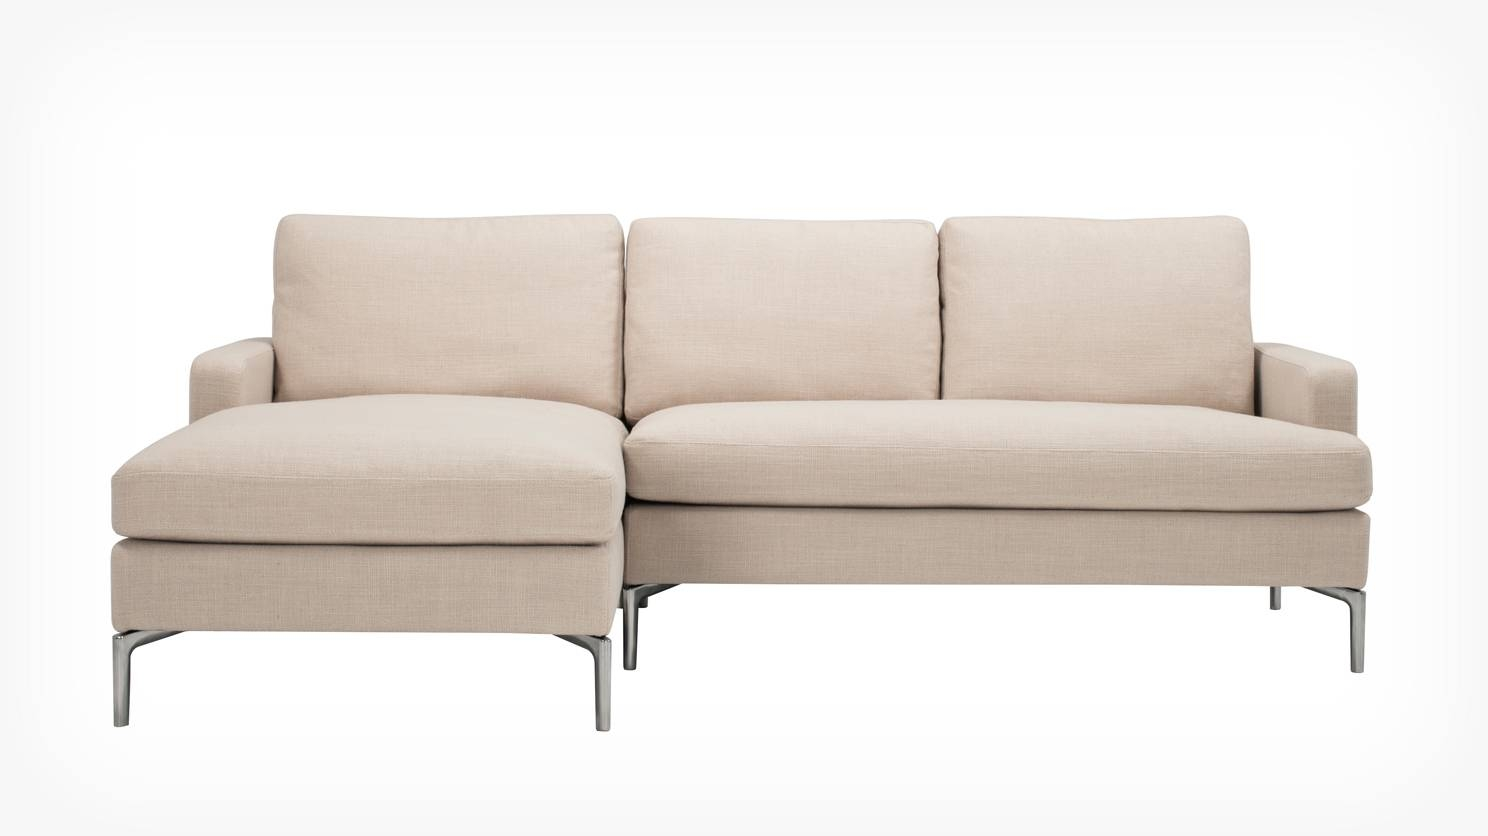 Eq3 | Eve 2-Piece Sectional Sofa With Chaise - Fabric within 2 Seat Sectional Sofas (Image 6 of 30)